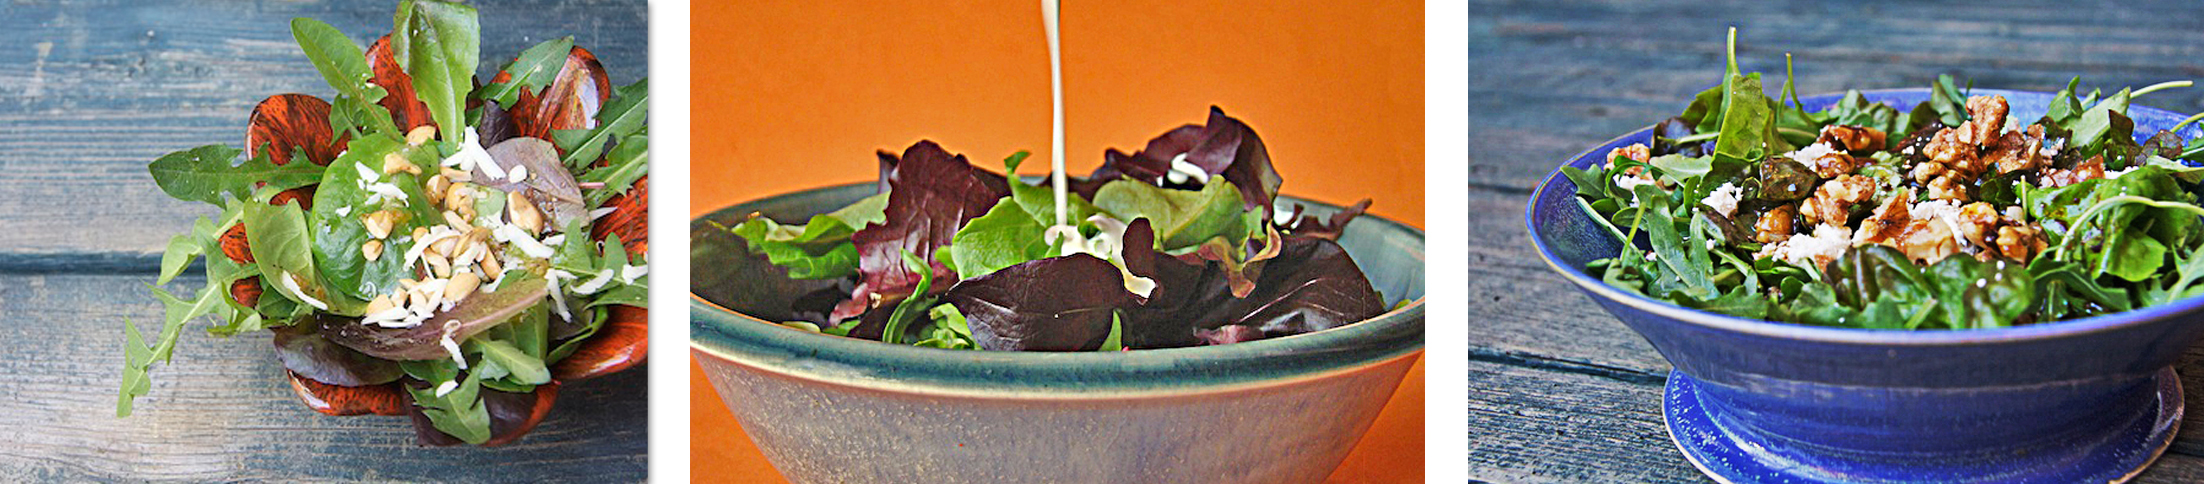 Homemade salad dressing - The Messy Baker